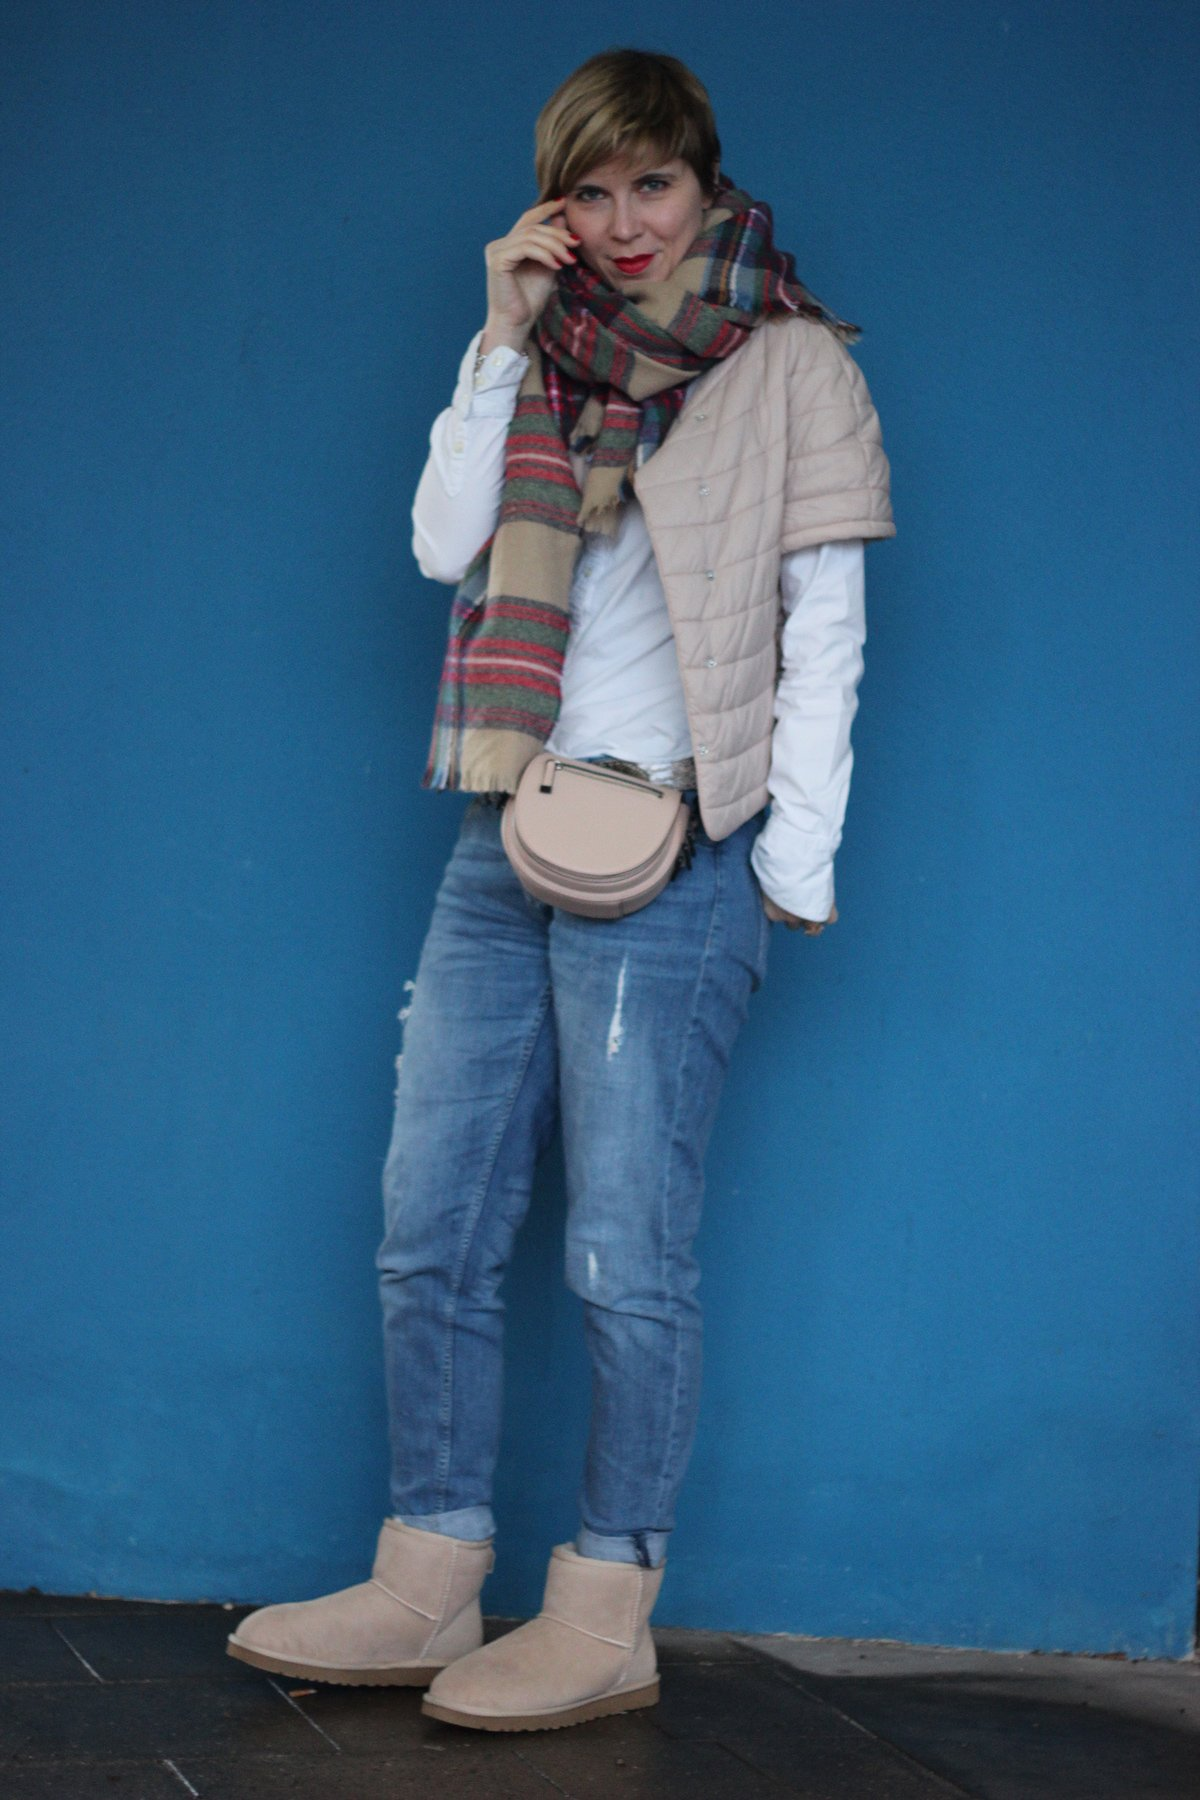 IMG_3360a-conny-doll-uggs-boyfriend-karoschal-weiße-bluse-windsor-outfitblog